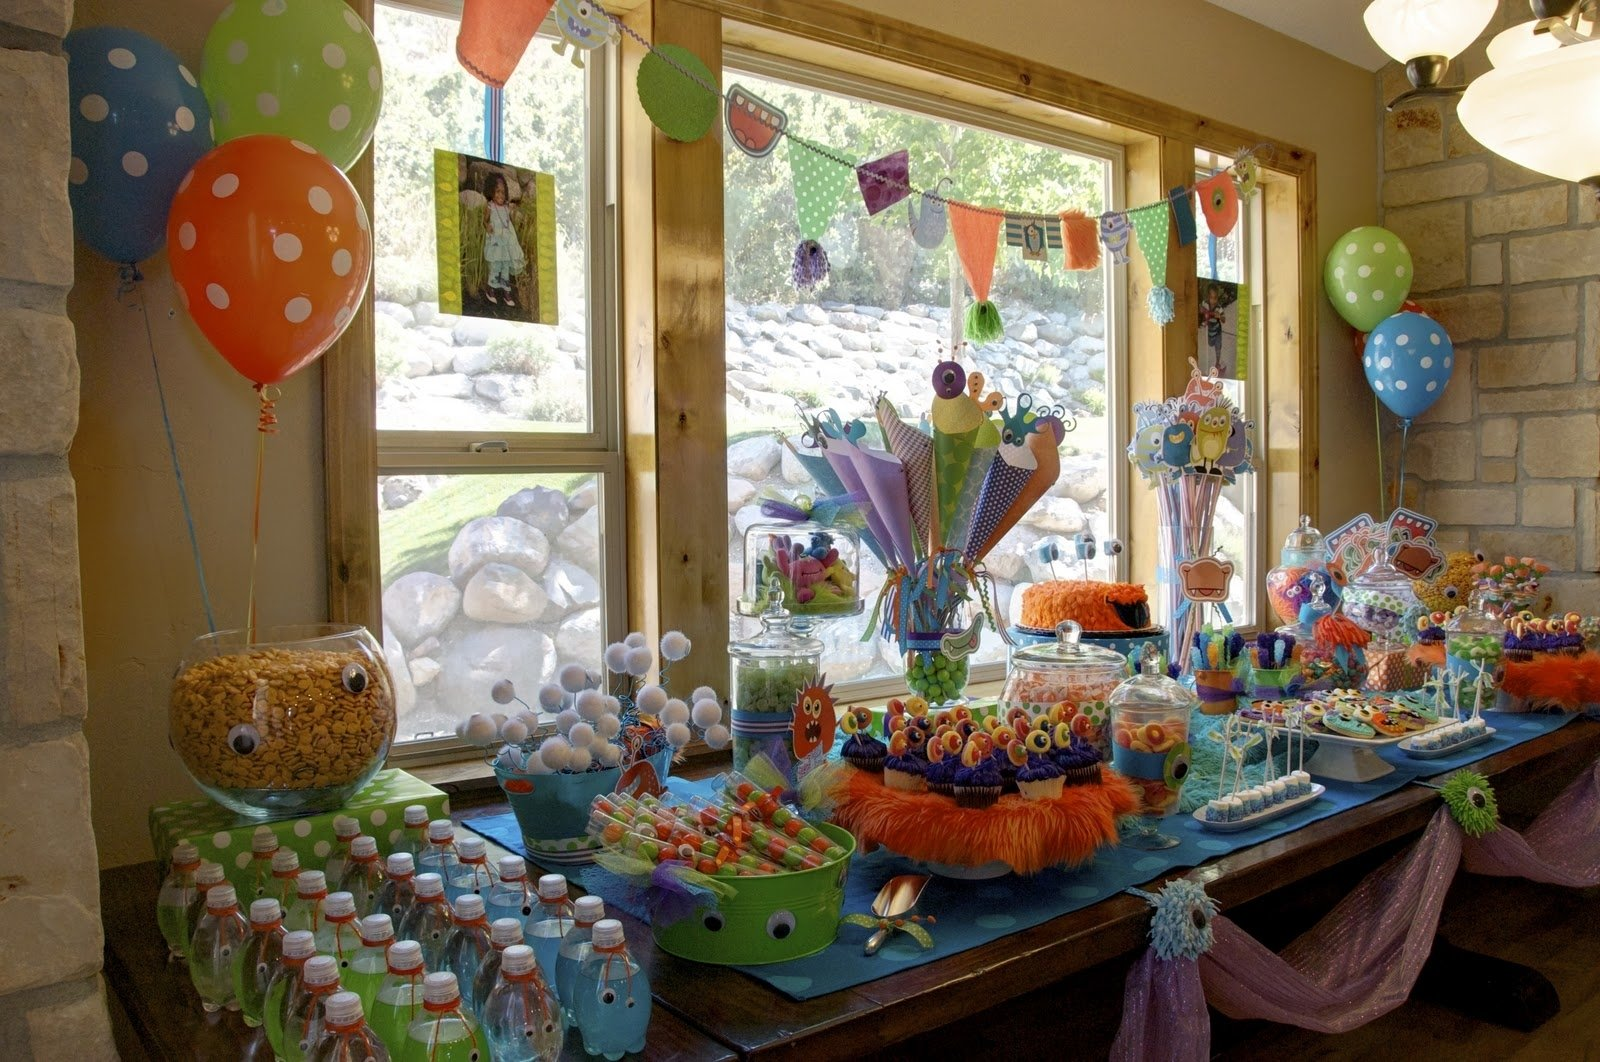 10 Attractive Birthday Party Ideas For 14 Year Olds 3 year old birthday party ideas nisartmacka 6